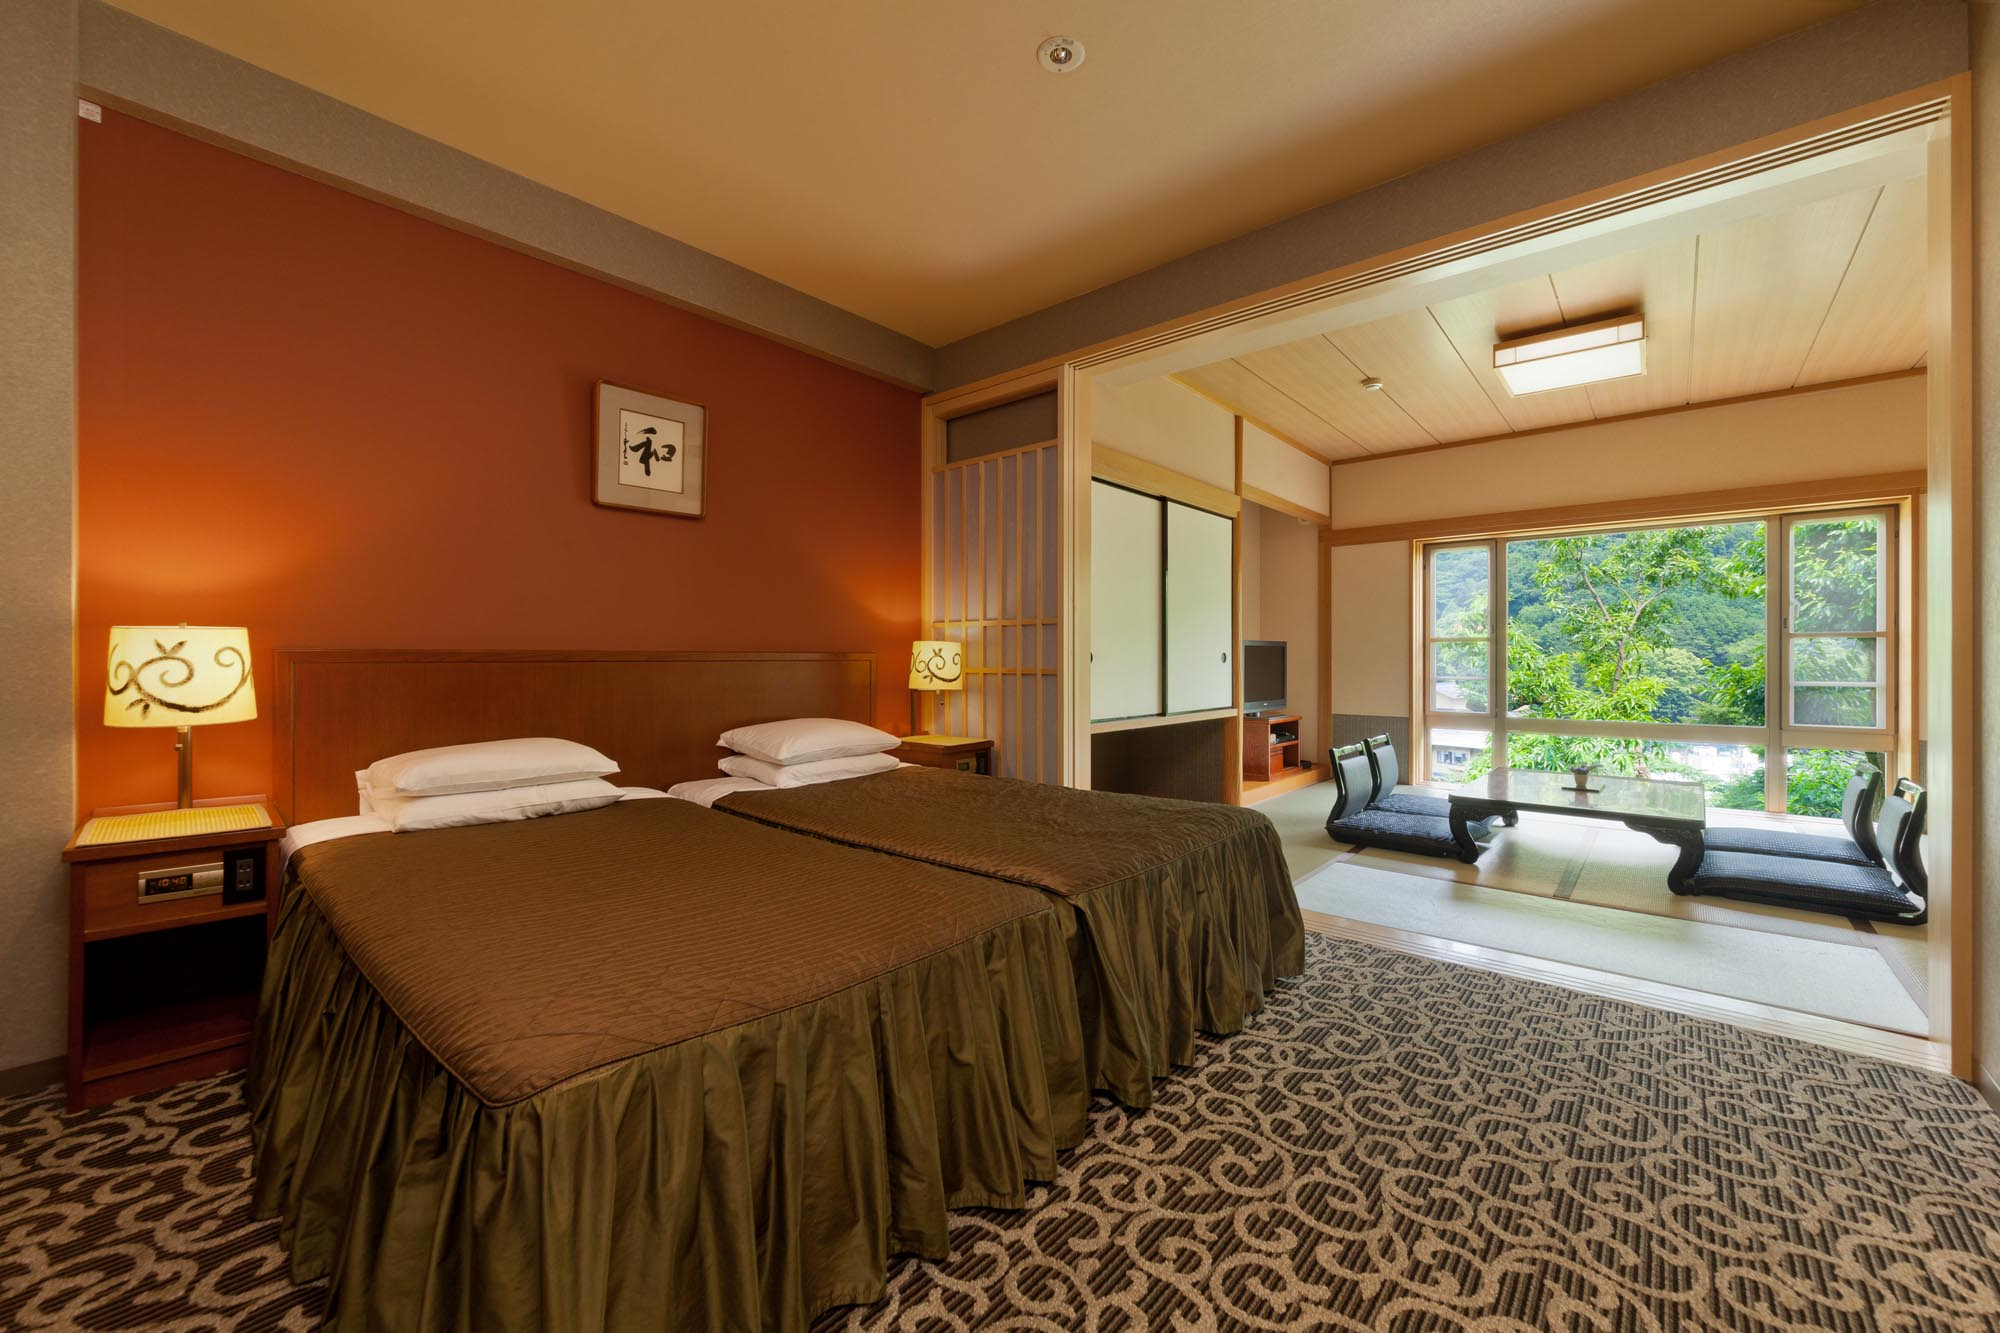 Suite room with Souhinoki Furo